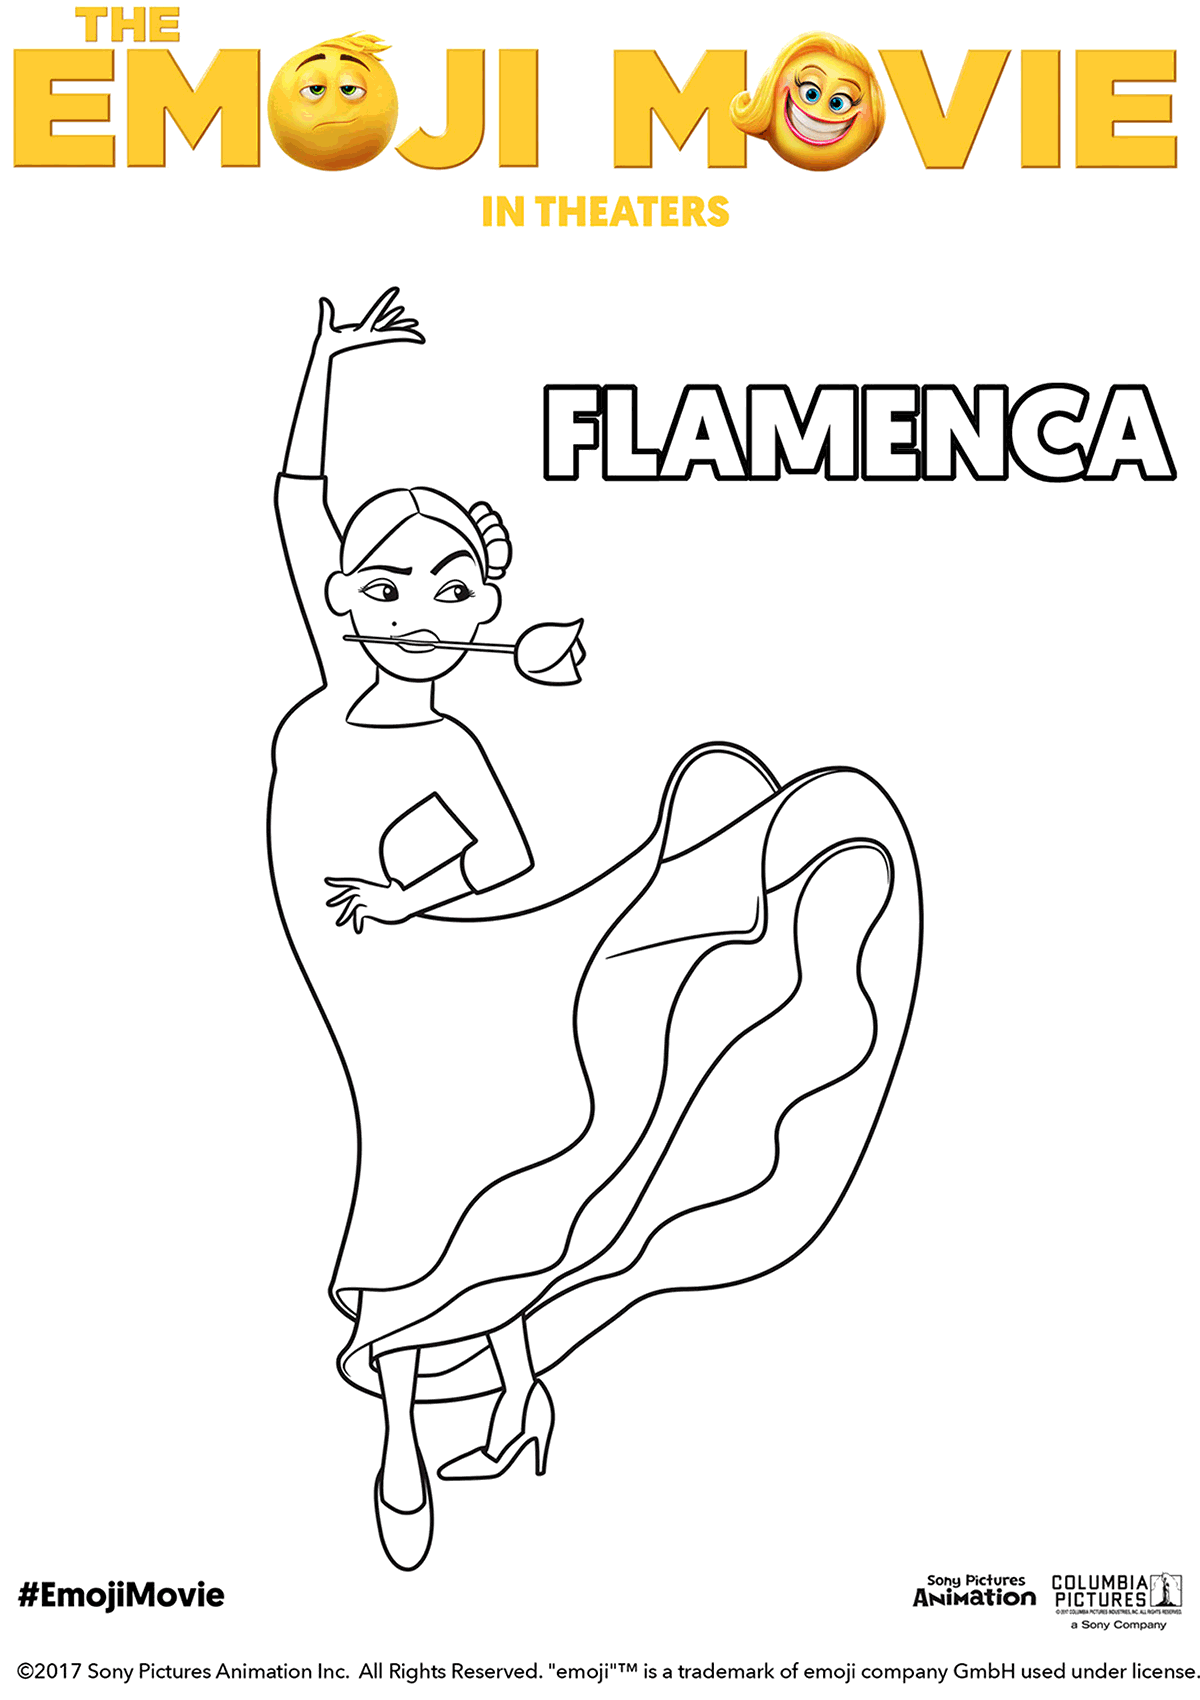 The Emoji Movie Flamenca Coloring Page